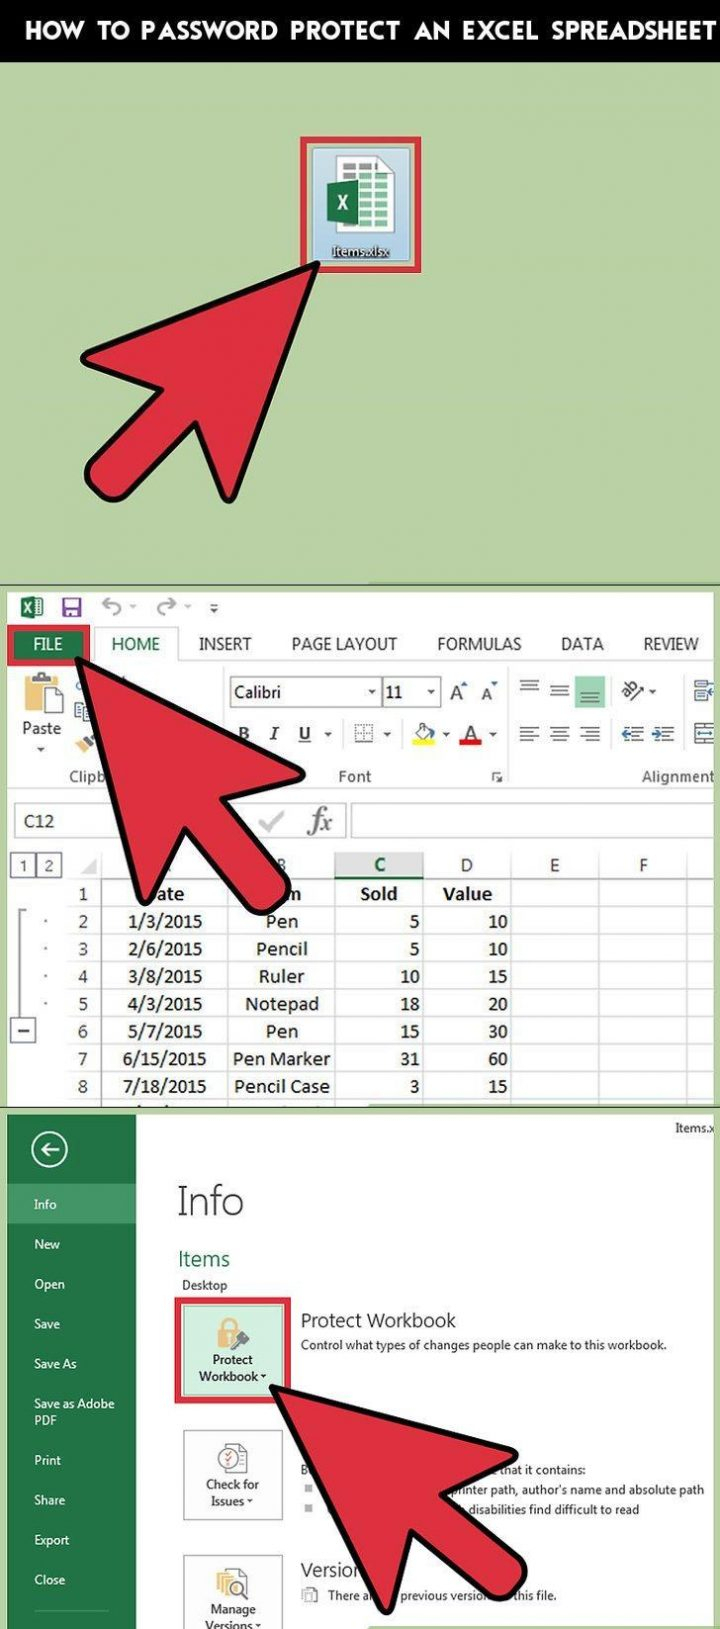 Password Protect Spreadsheet For How To Password Protect An Excel Spreadsheet  Practical Information